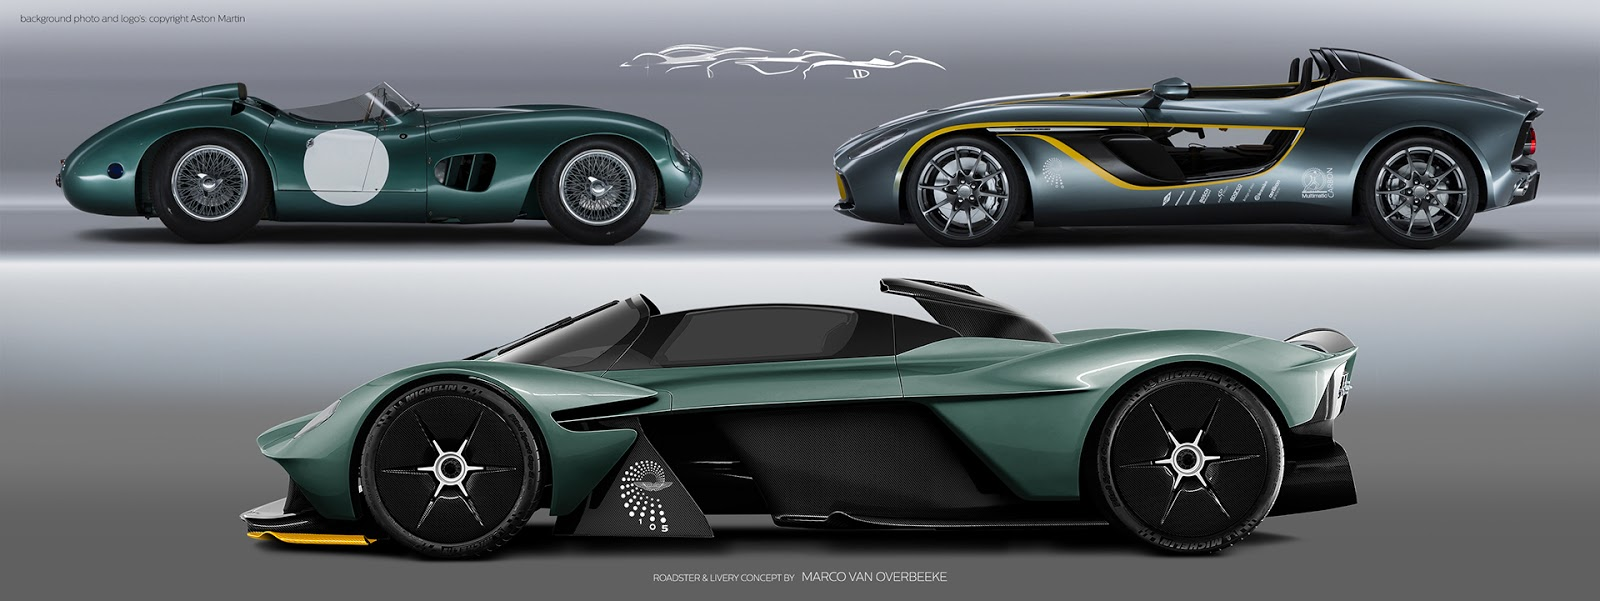 Aston Martin Valkyrie Rendered In Track Only And Roadster